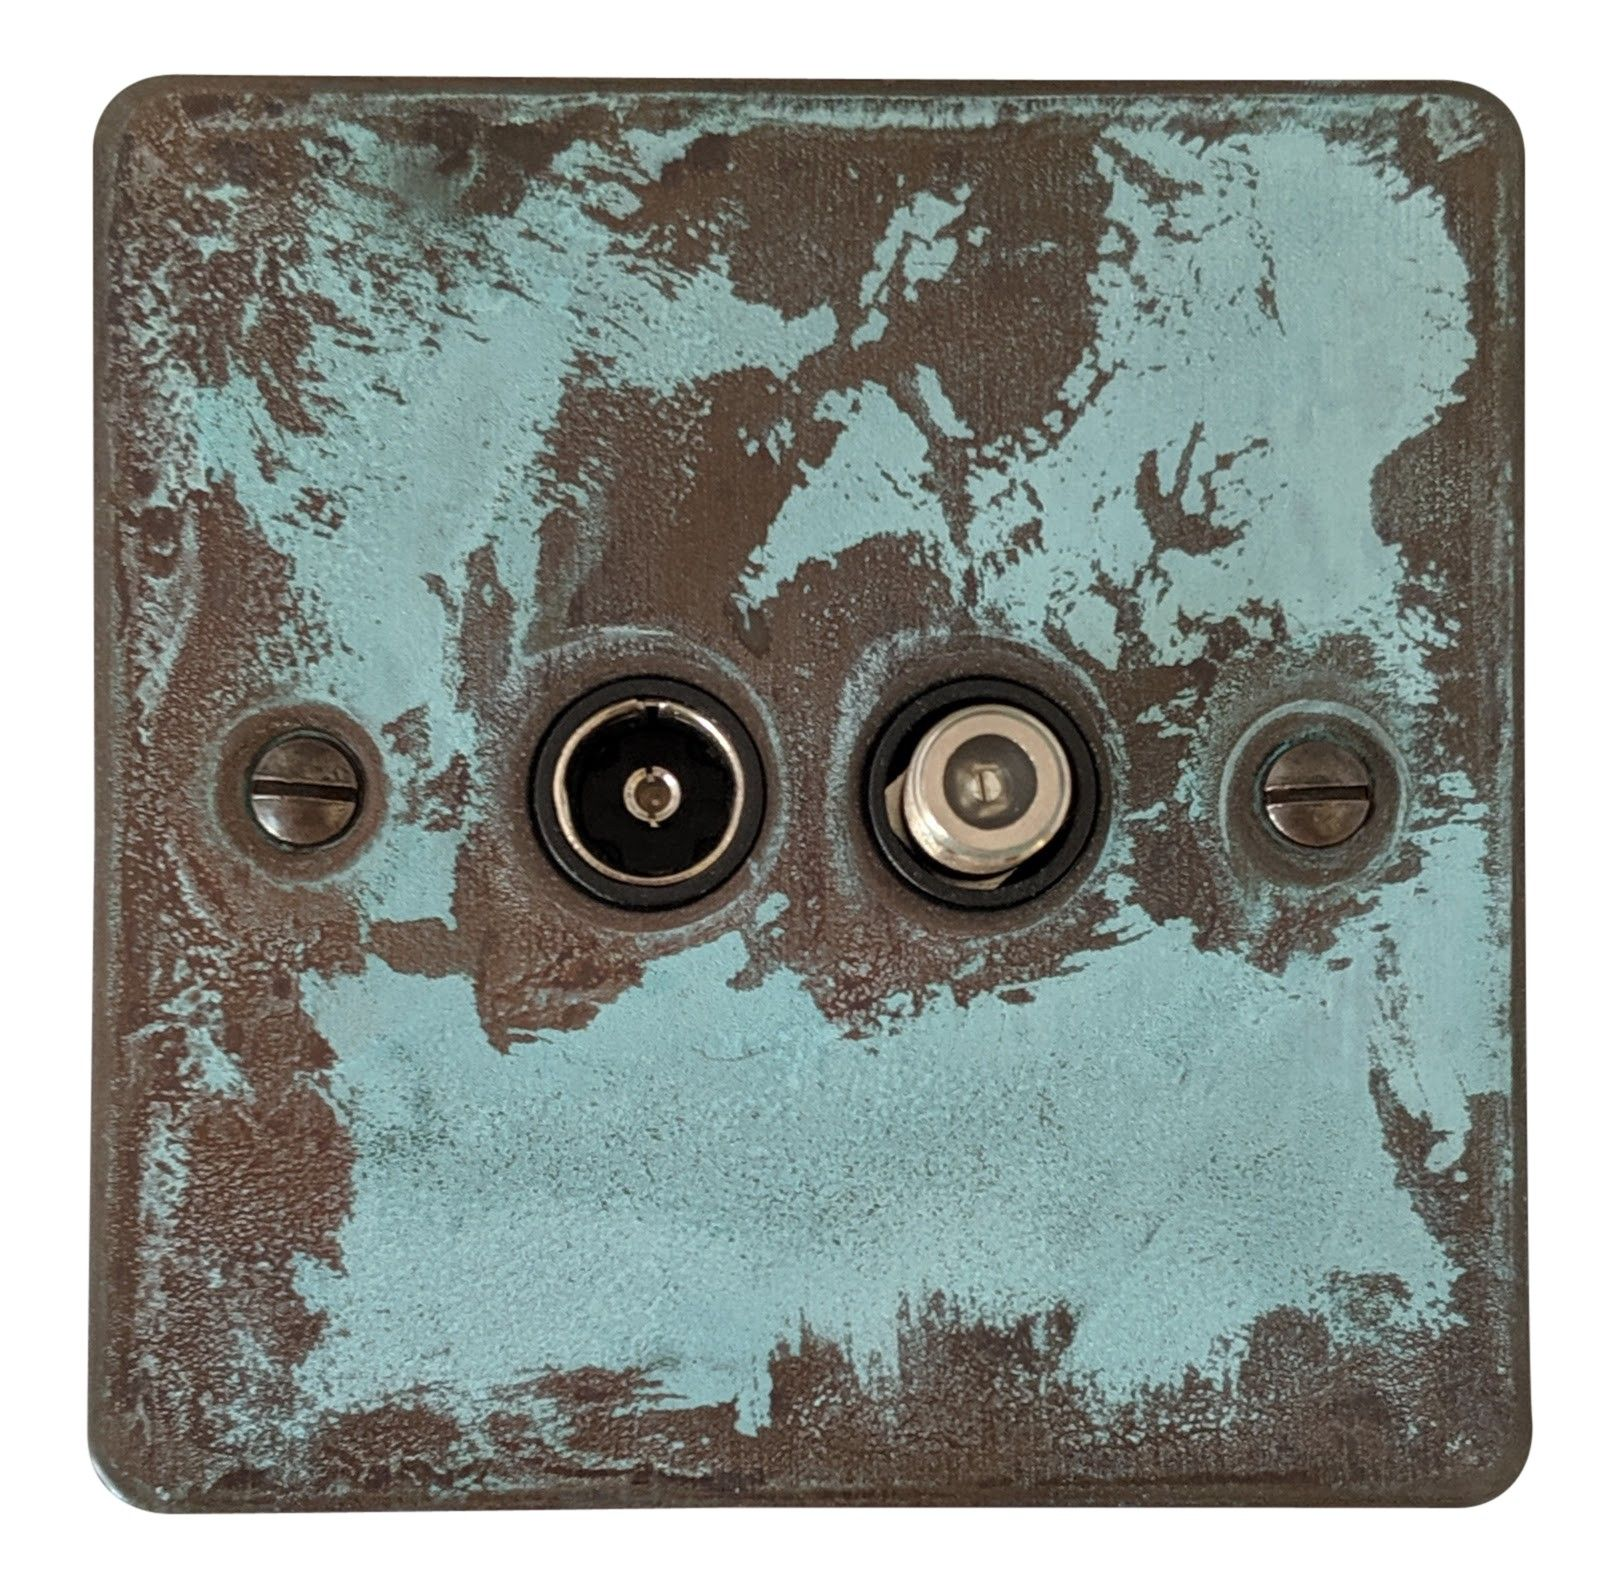 G&H FV38B Flat Plate Verdigris 1 Gang TV Coax & Satellite Socket Point